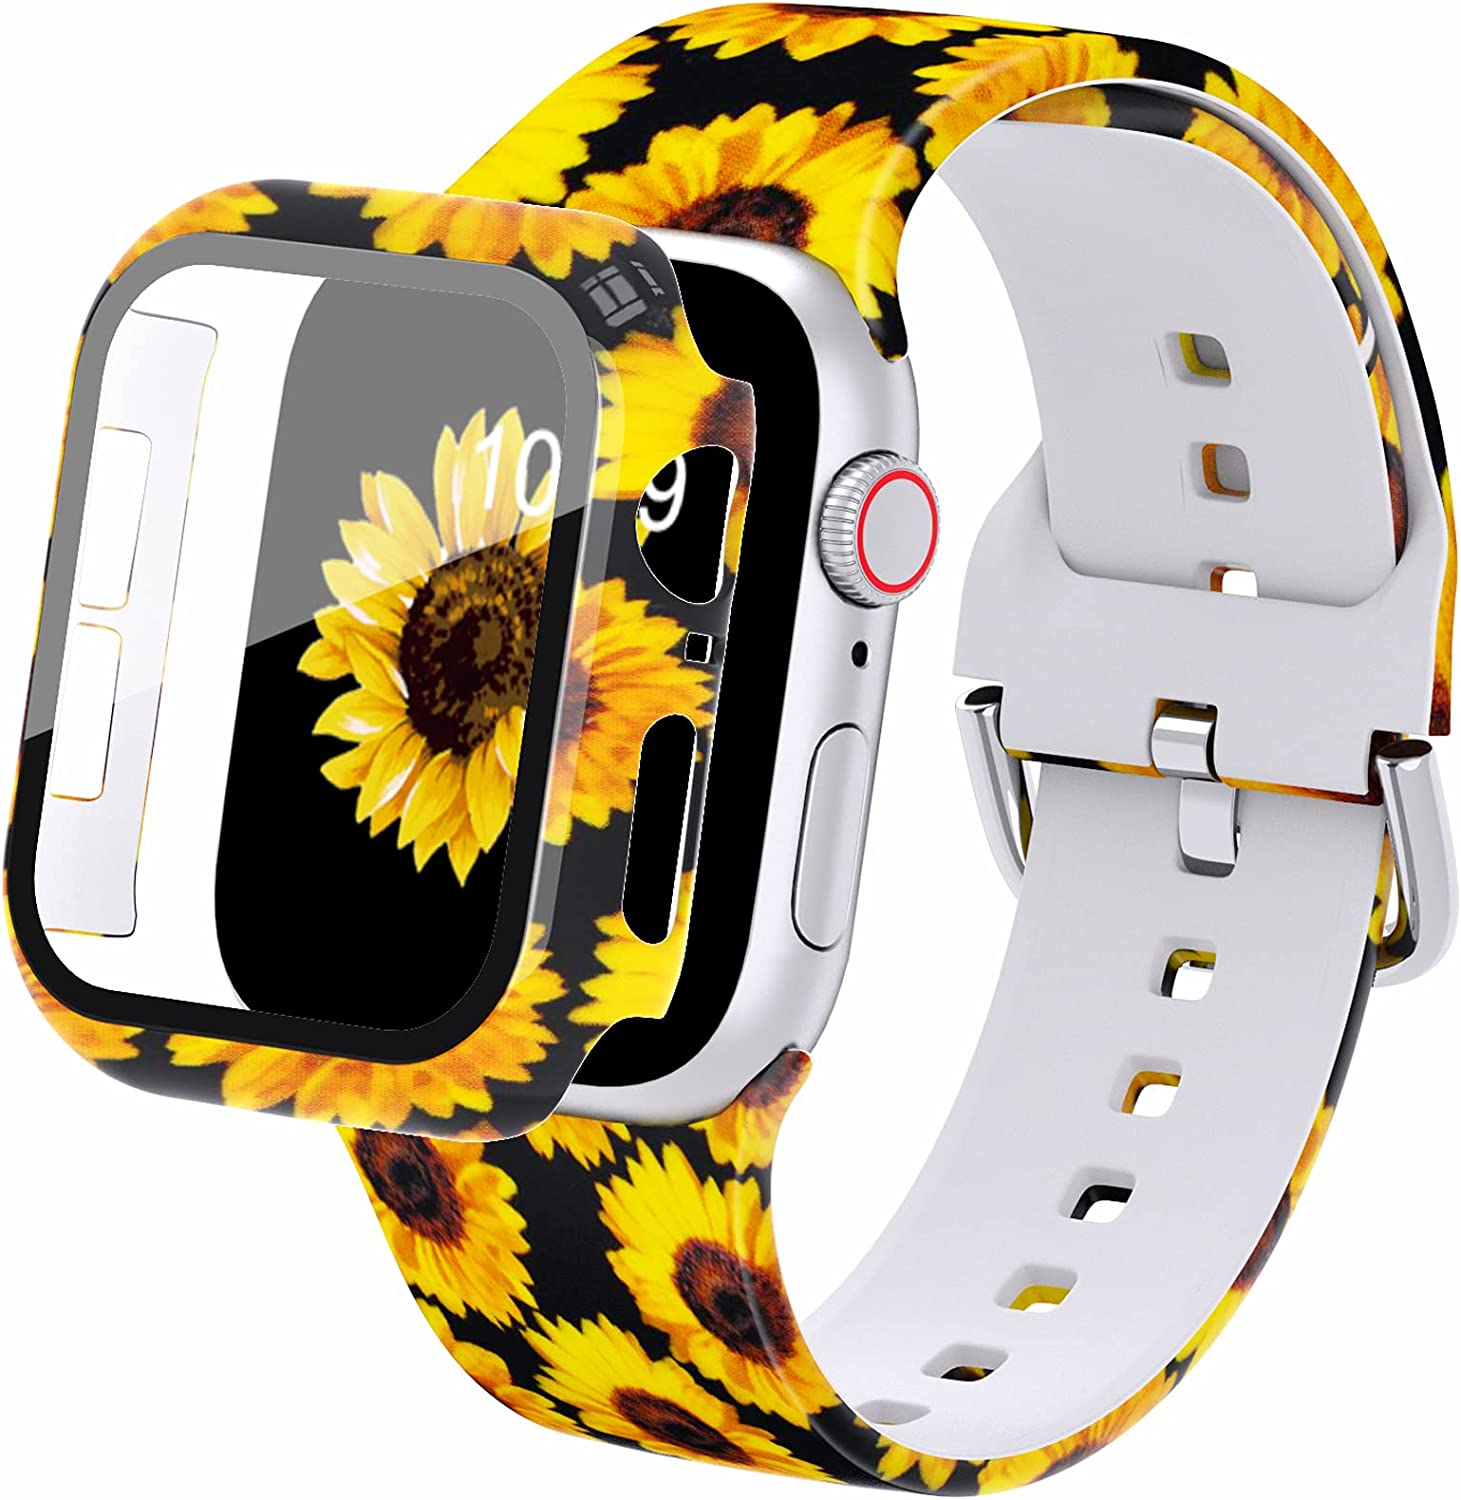 DABAOZA Compatible for Apple Watch Band 38mm with Case, Women Girl Soft Silicone Elastic Pattern Replacement Wristband for iWatch Band Series 3/2/1